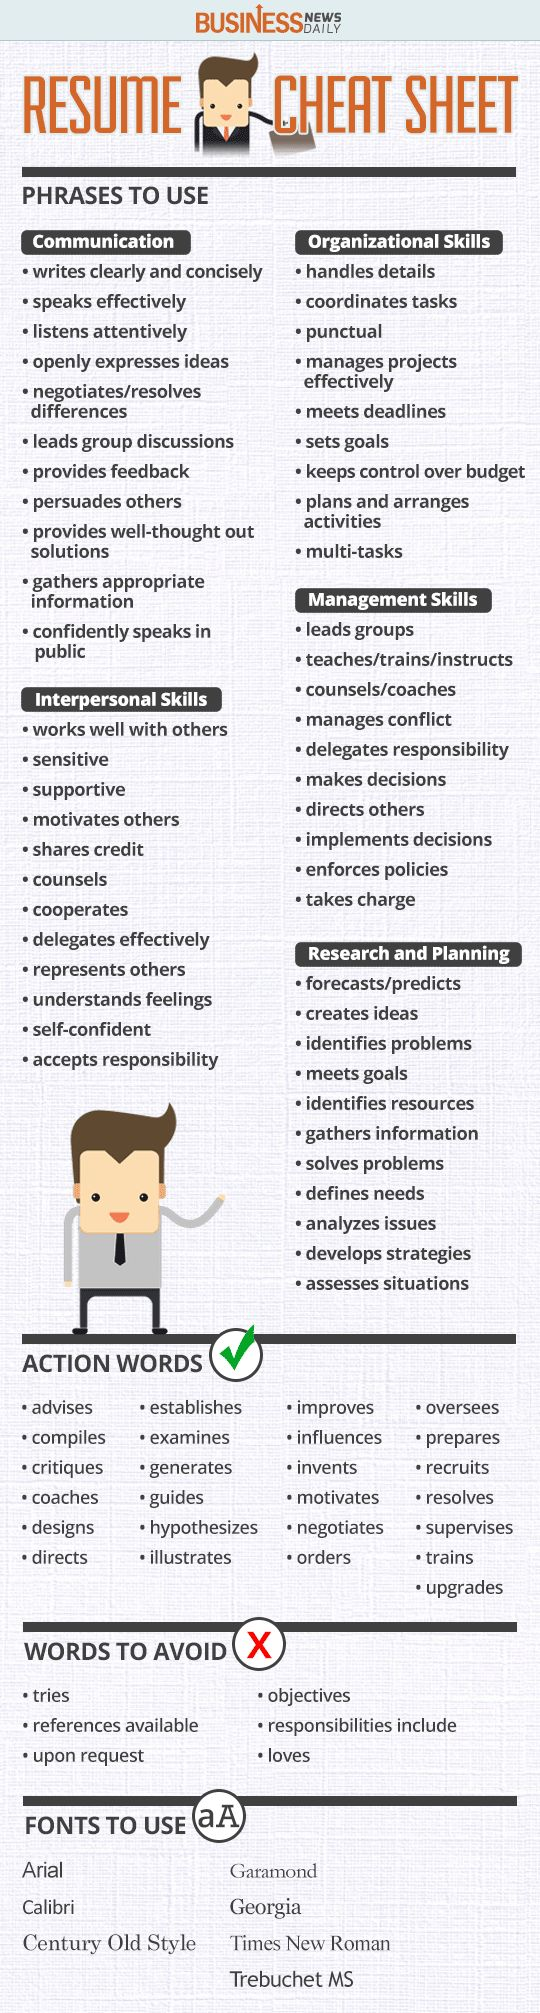 Opposenewapstandardsus  Splendid  Ideas About Resume On Pinterest  Cv Format Resume Cv And  With Entrancing Resume Cheat Sheet Infographic Andrews Almost Done With A Complete Unit On Employment Which With Astonishing Fire Department Resume Also Active Verbs For Resumes In Addition Cover Resume And Skills To Put On Resumes As Well As No Resume Additionally Resume For A Receptionist From Pinterestcom With Opposenewapstandardsus  Entrancing  Ideas About Resume On Pinterest  Cv Format Resume Cv And  With Astonishing Resume Cheat Sheet Infographic Andrews Almost Done With A Complete Unit On Employment Which And Splendid Fire Department Resume Also Active Verbs For Resumes In Addition Cover Resume From Pinterestcom